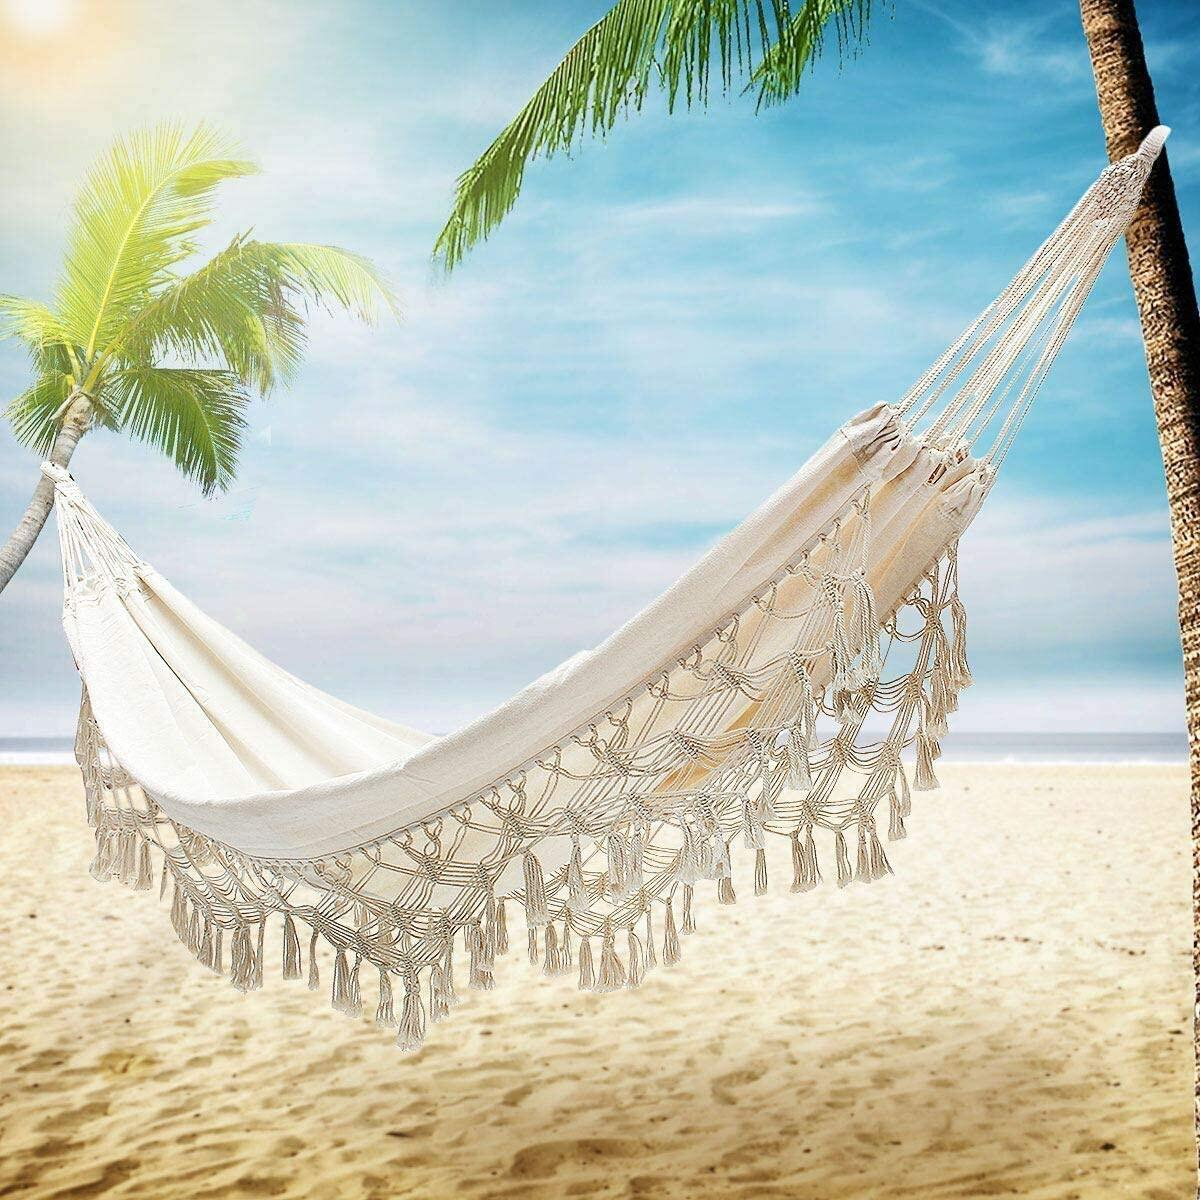 Boho Large Brazilian Fringed Macrame Double Deluxe Hammock Swing Bed with Carry Bag for Patio, Porch, Bedroom, Yard, Beach, Indoor, Outdoor & Wedding Party Decor, Beige